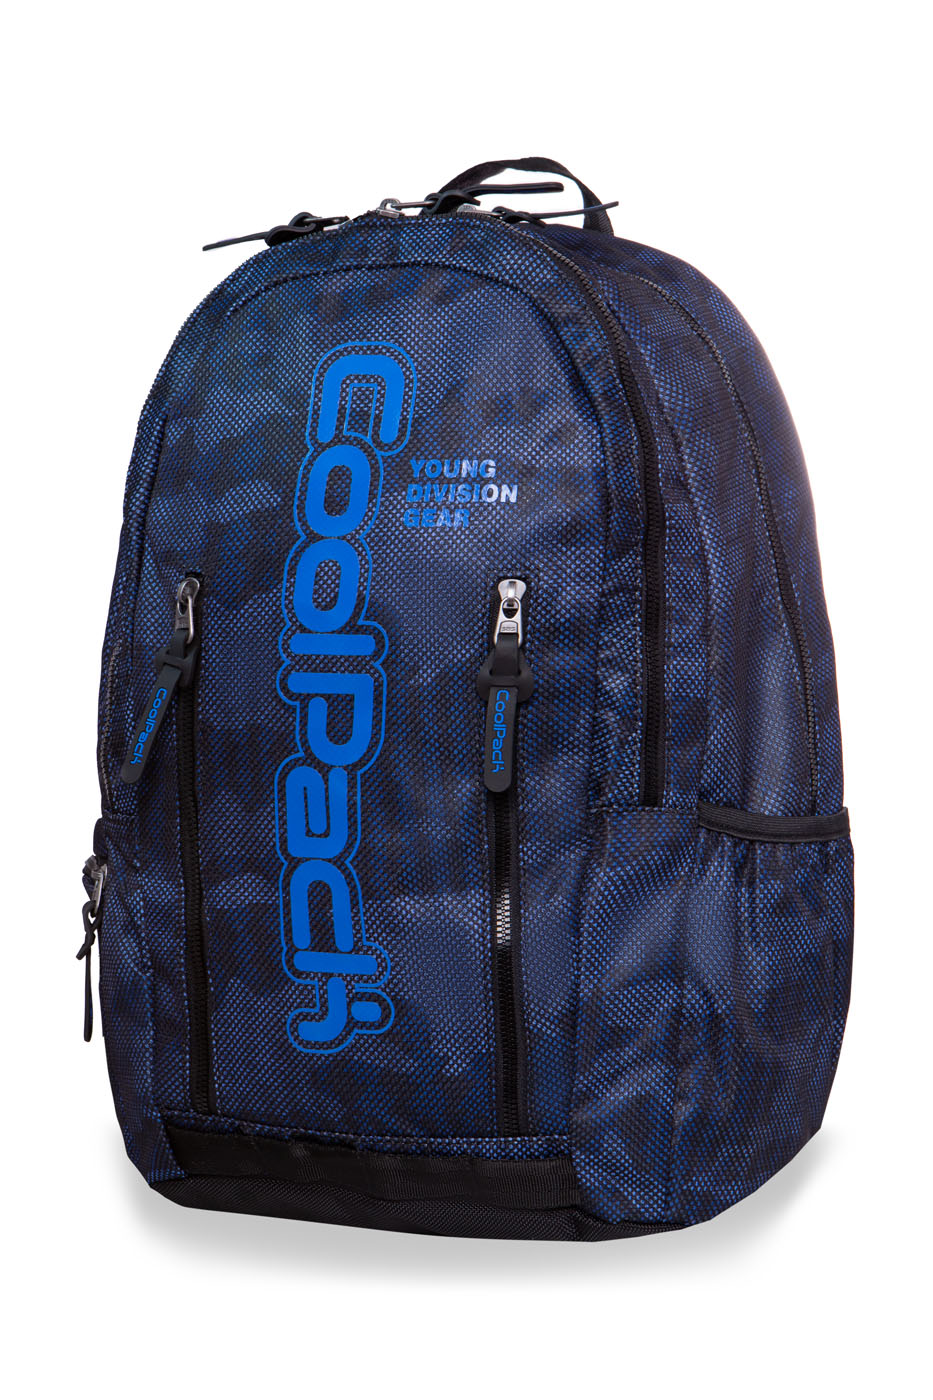 Coolpack - impact ii - youth backpack - army blue